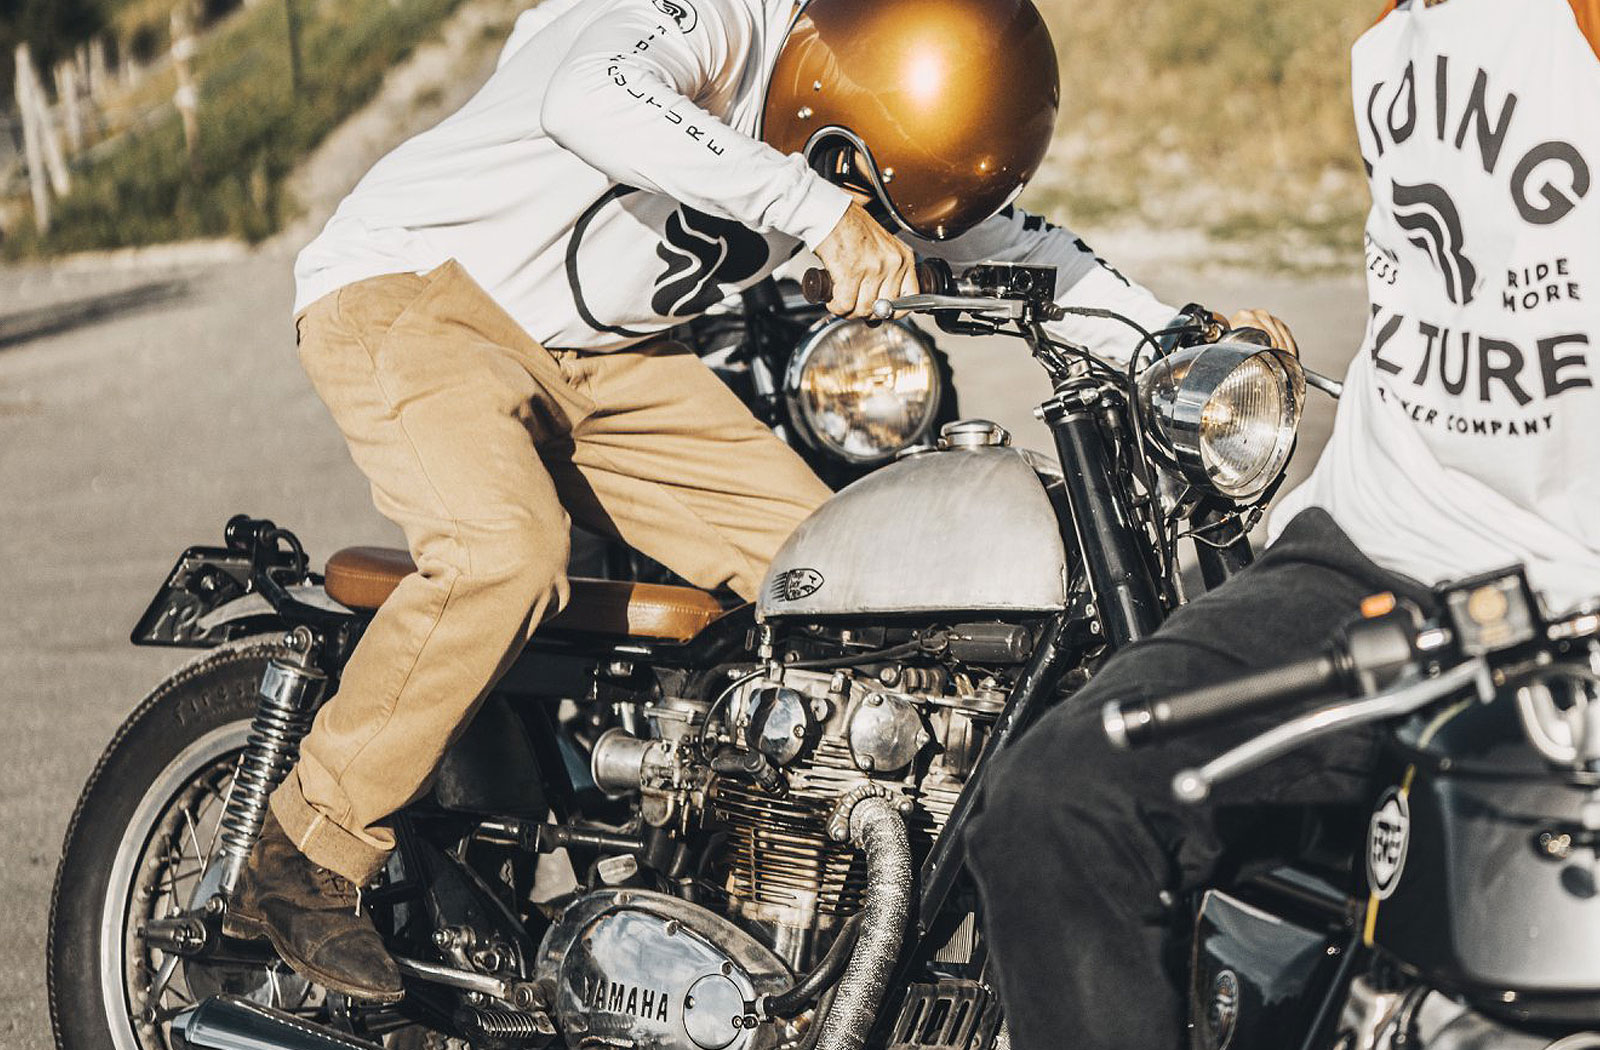 Riding Culture Motorcycle apparel